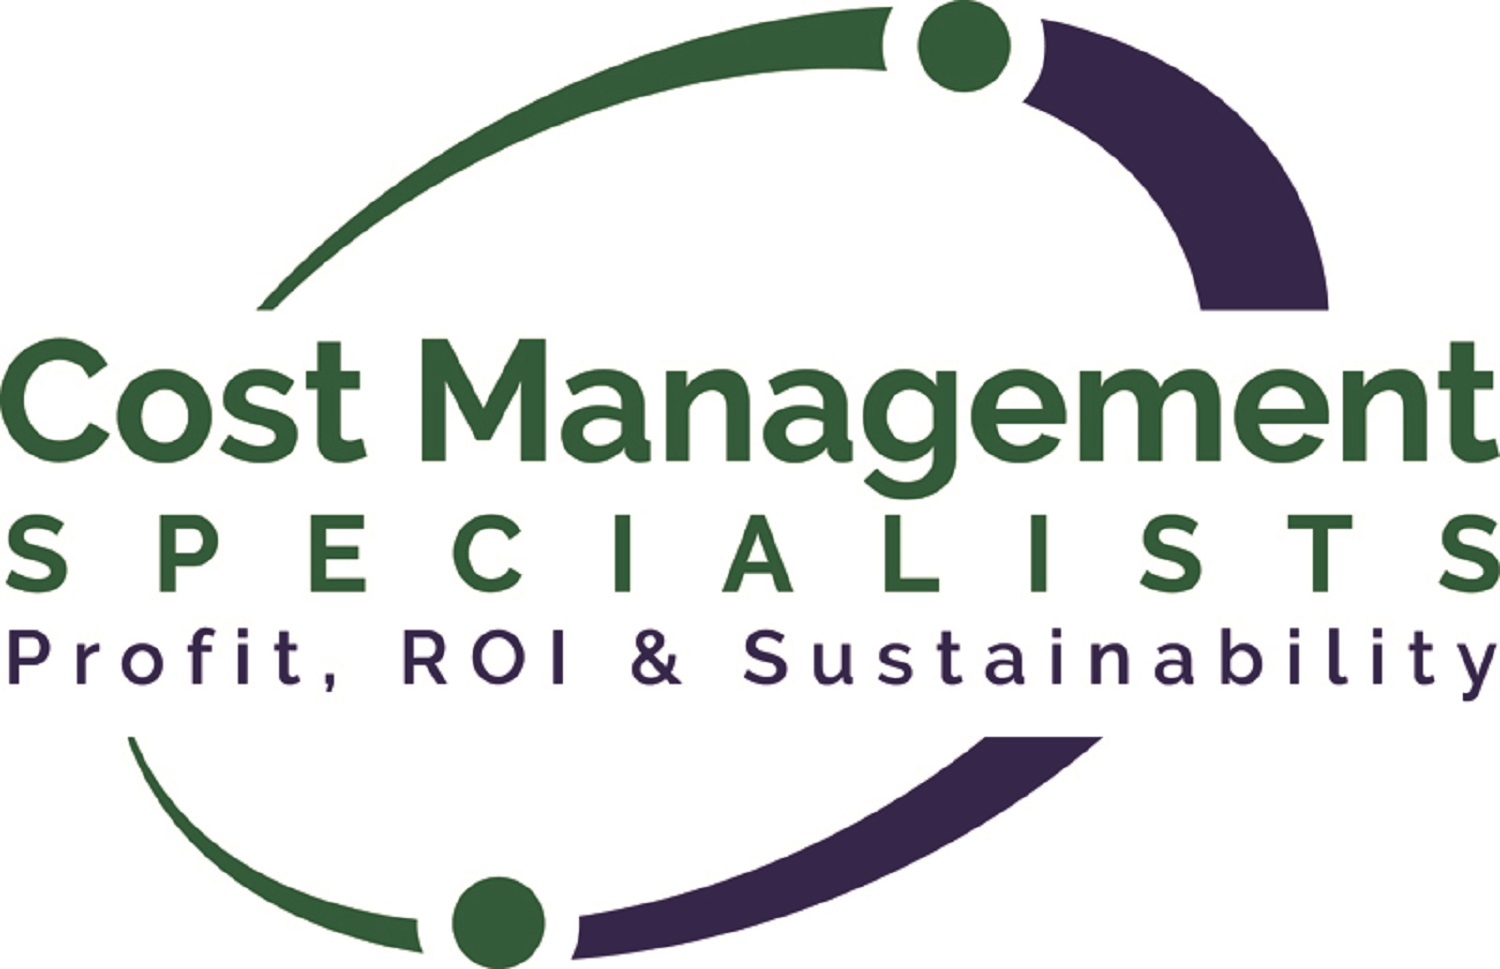 Cost Management Specialists